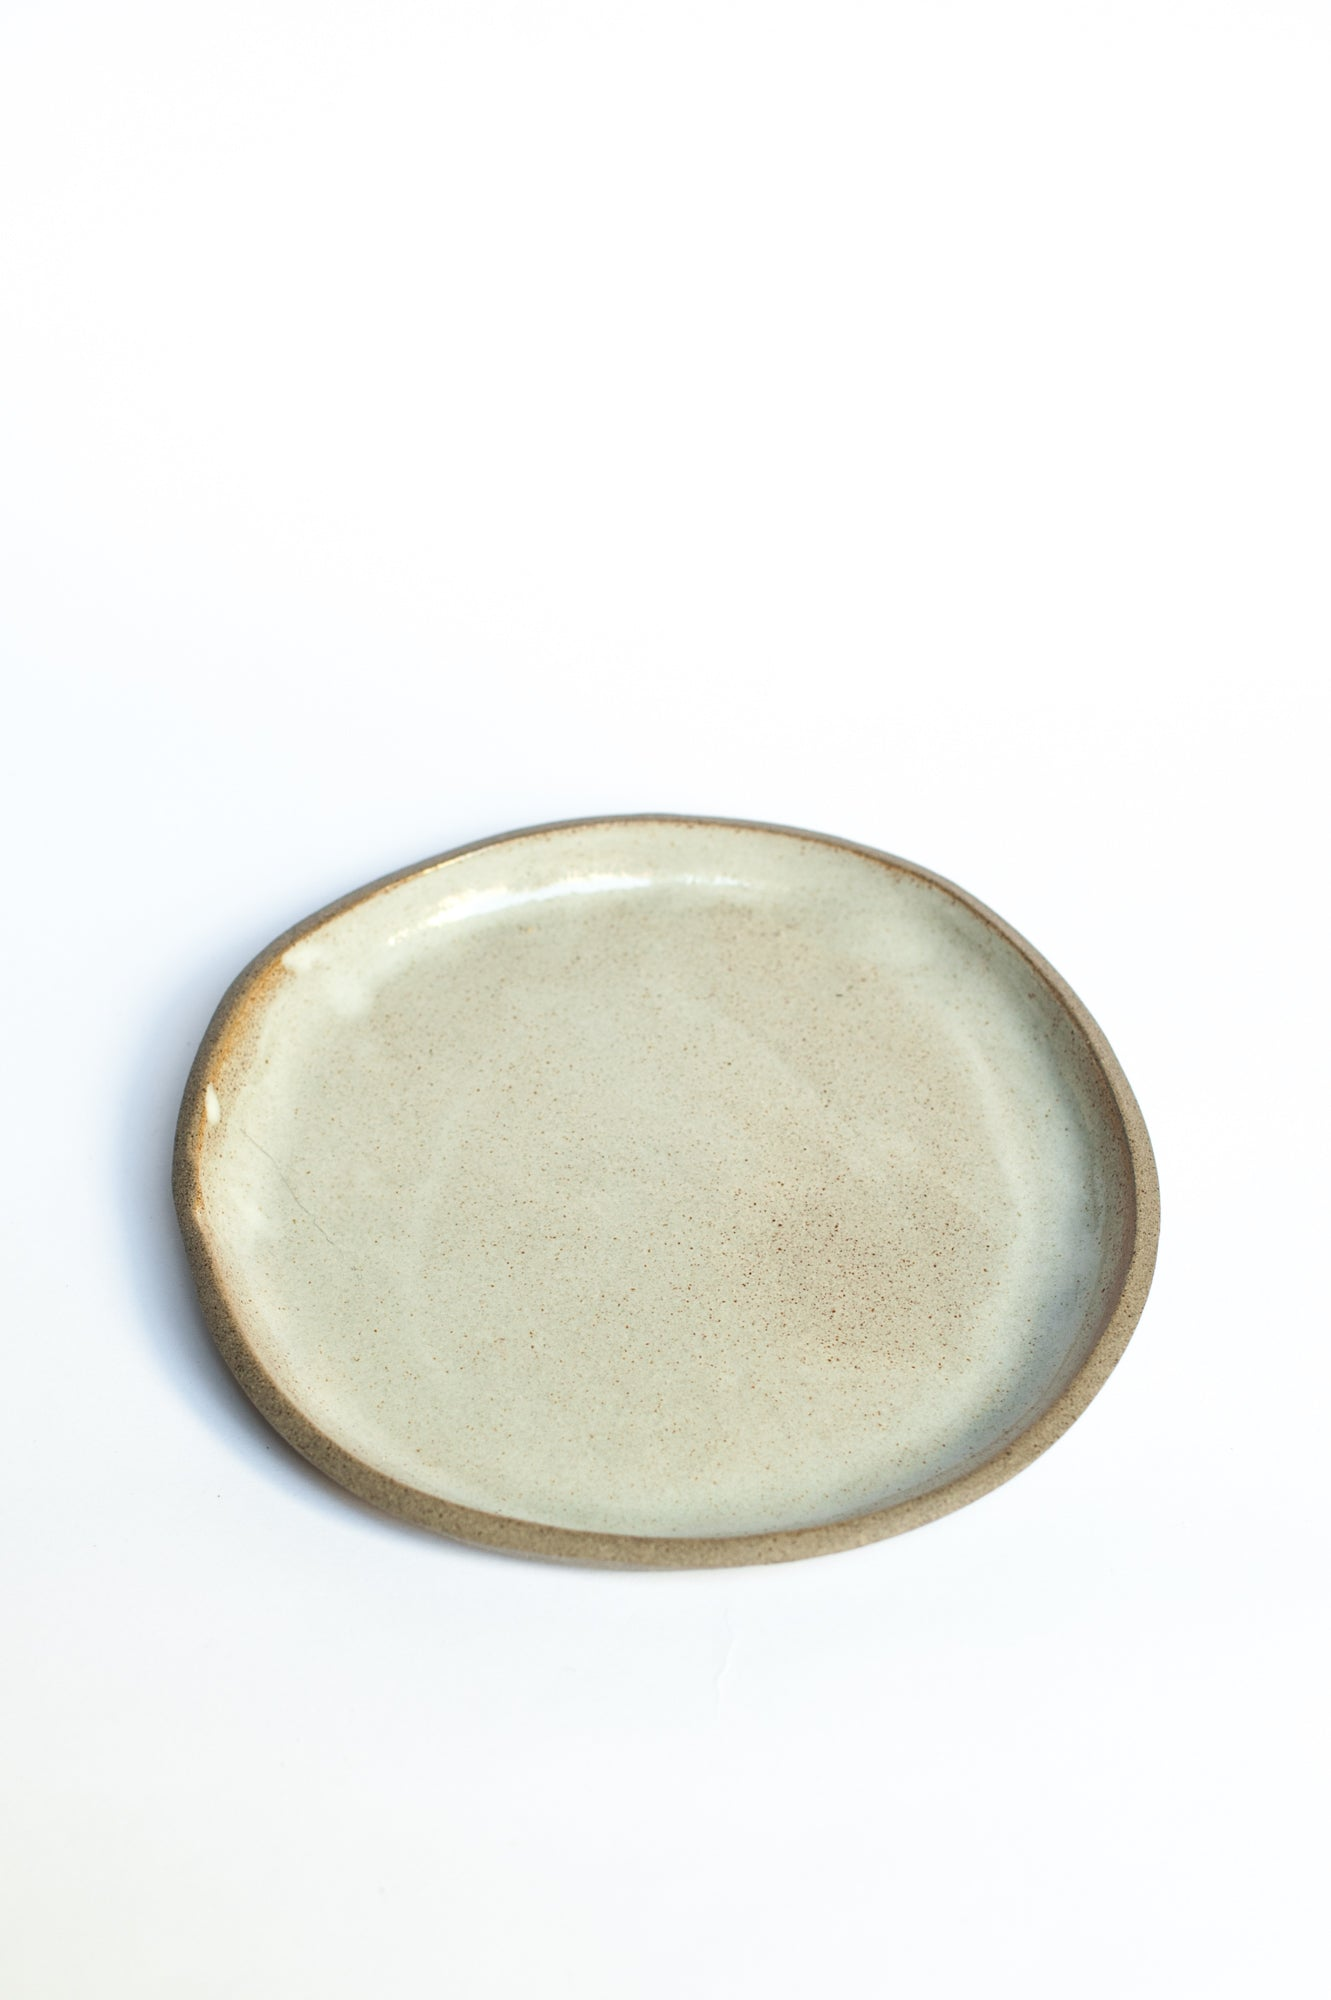 Medium smooth white plate